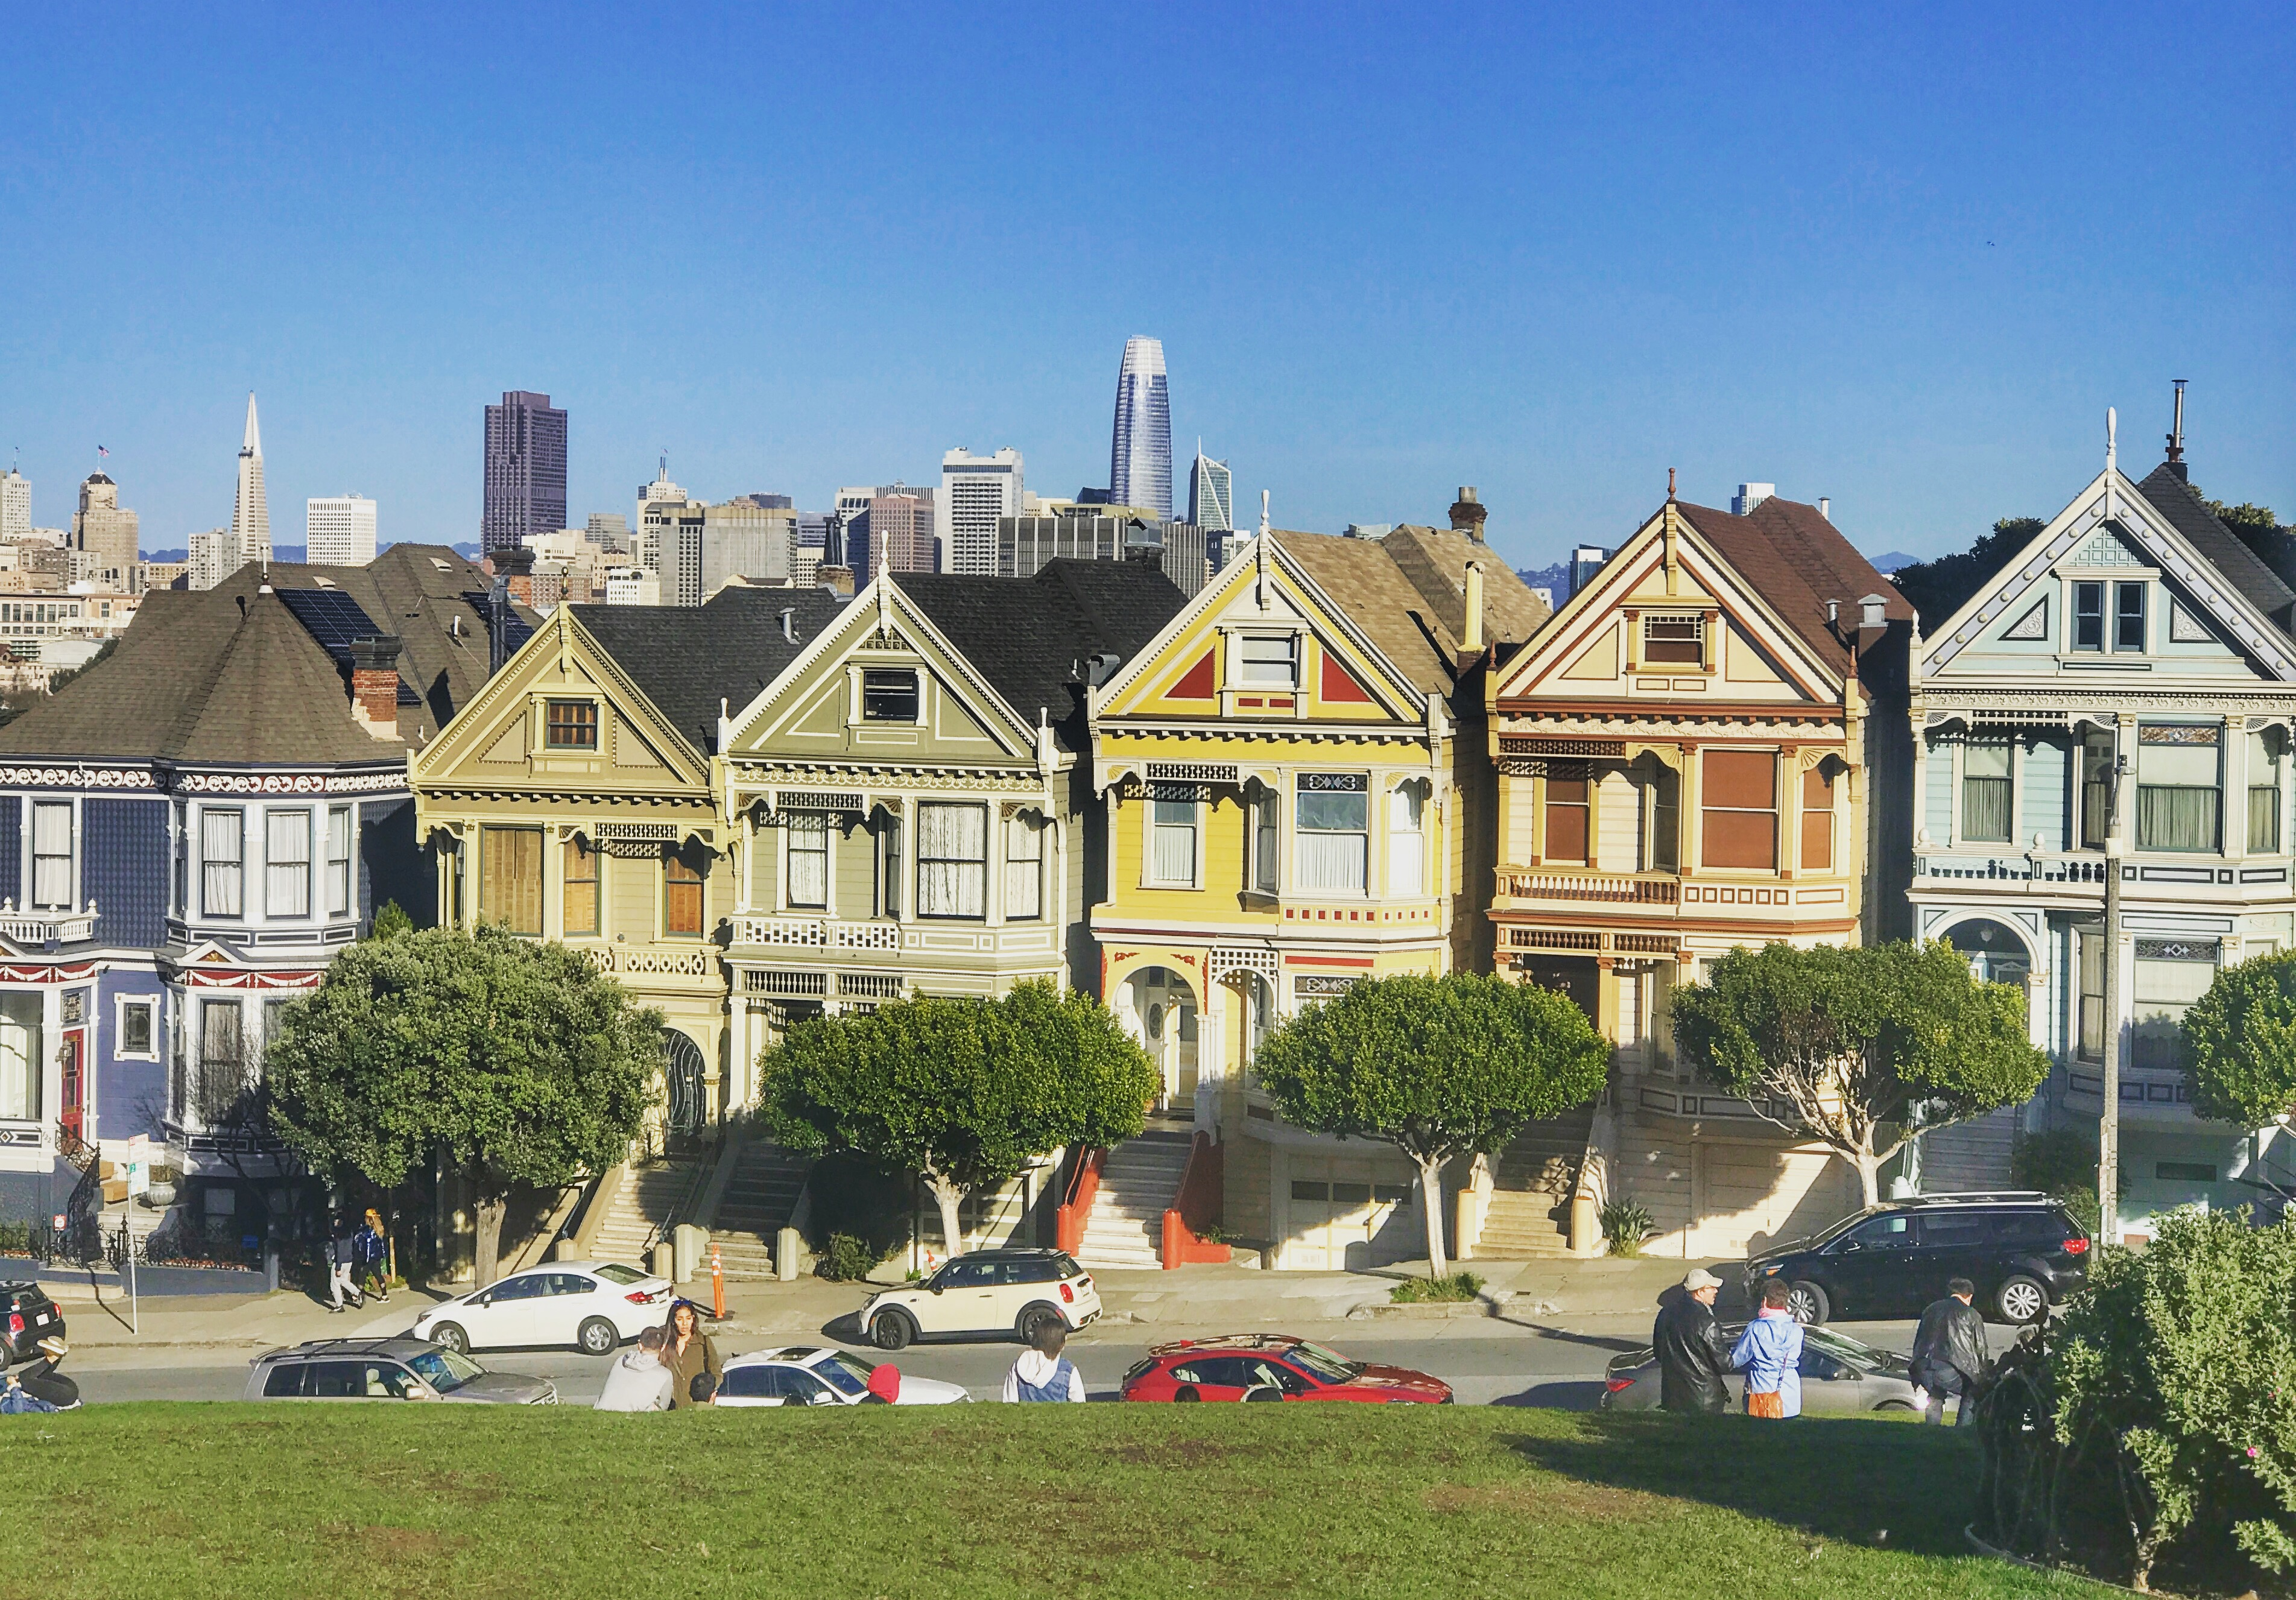 Painted Ladies San francisco, Painted ladies houses, Full House house in San Francisco, Explore San Francisco in One Day